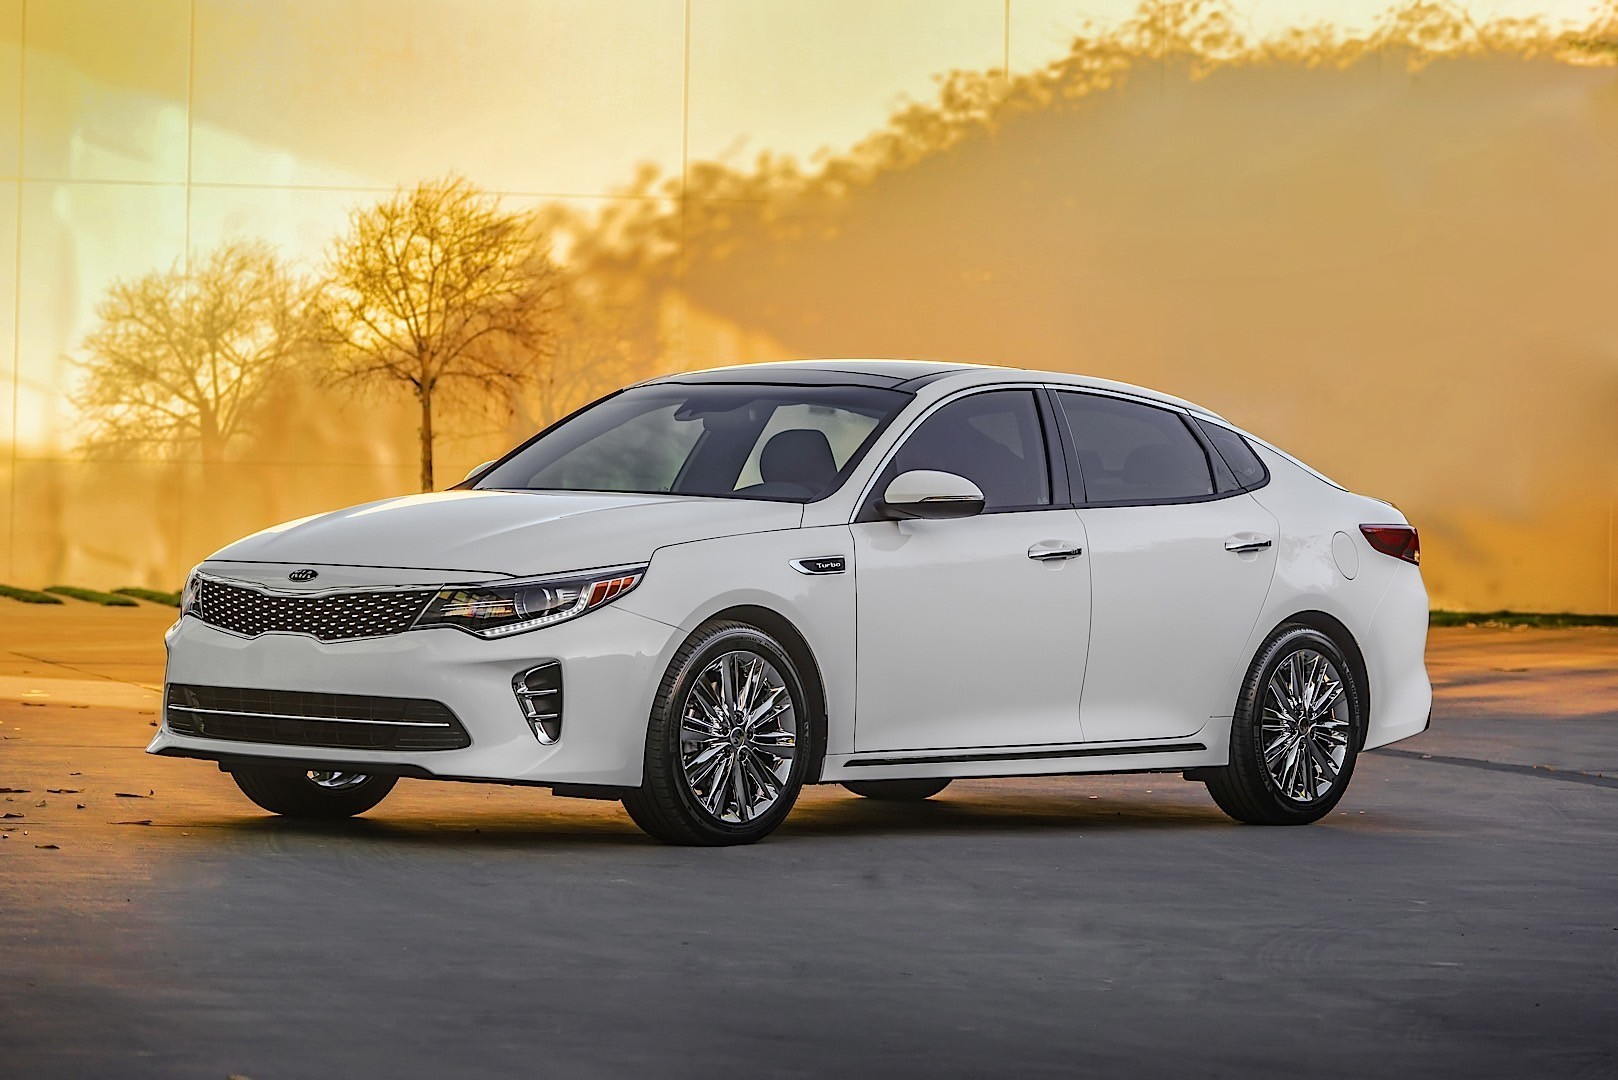 extensive reviews as most car magazines and websites do the people at consumer reports focus on additional factors to determine their top ten picks of